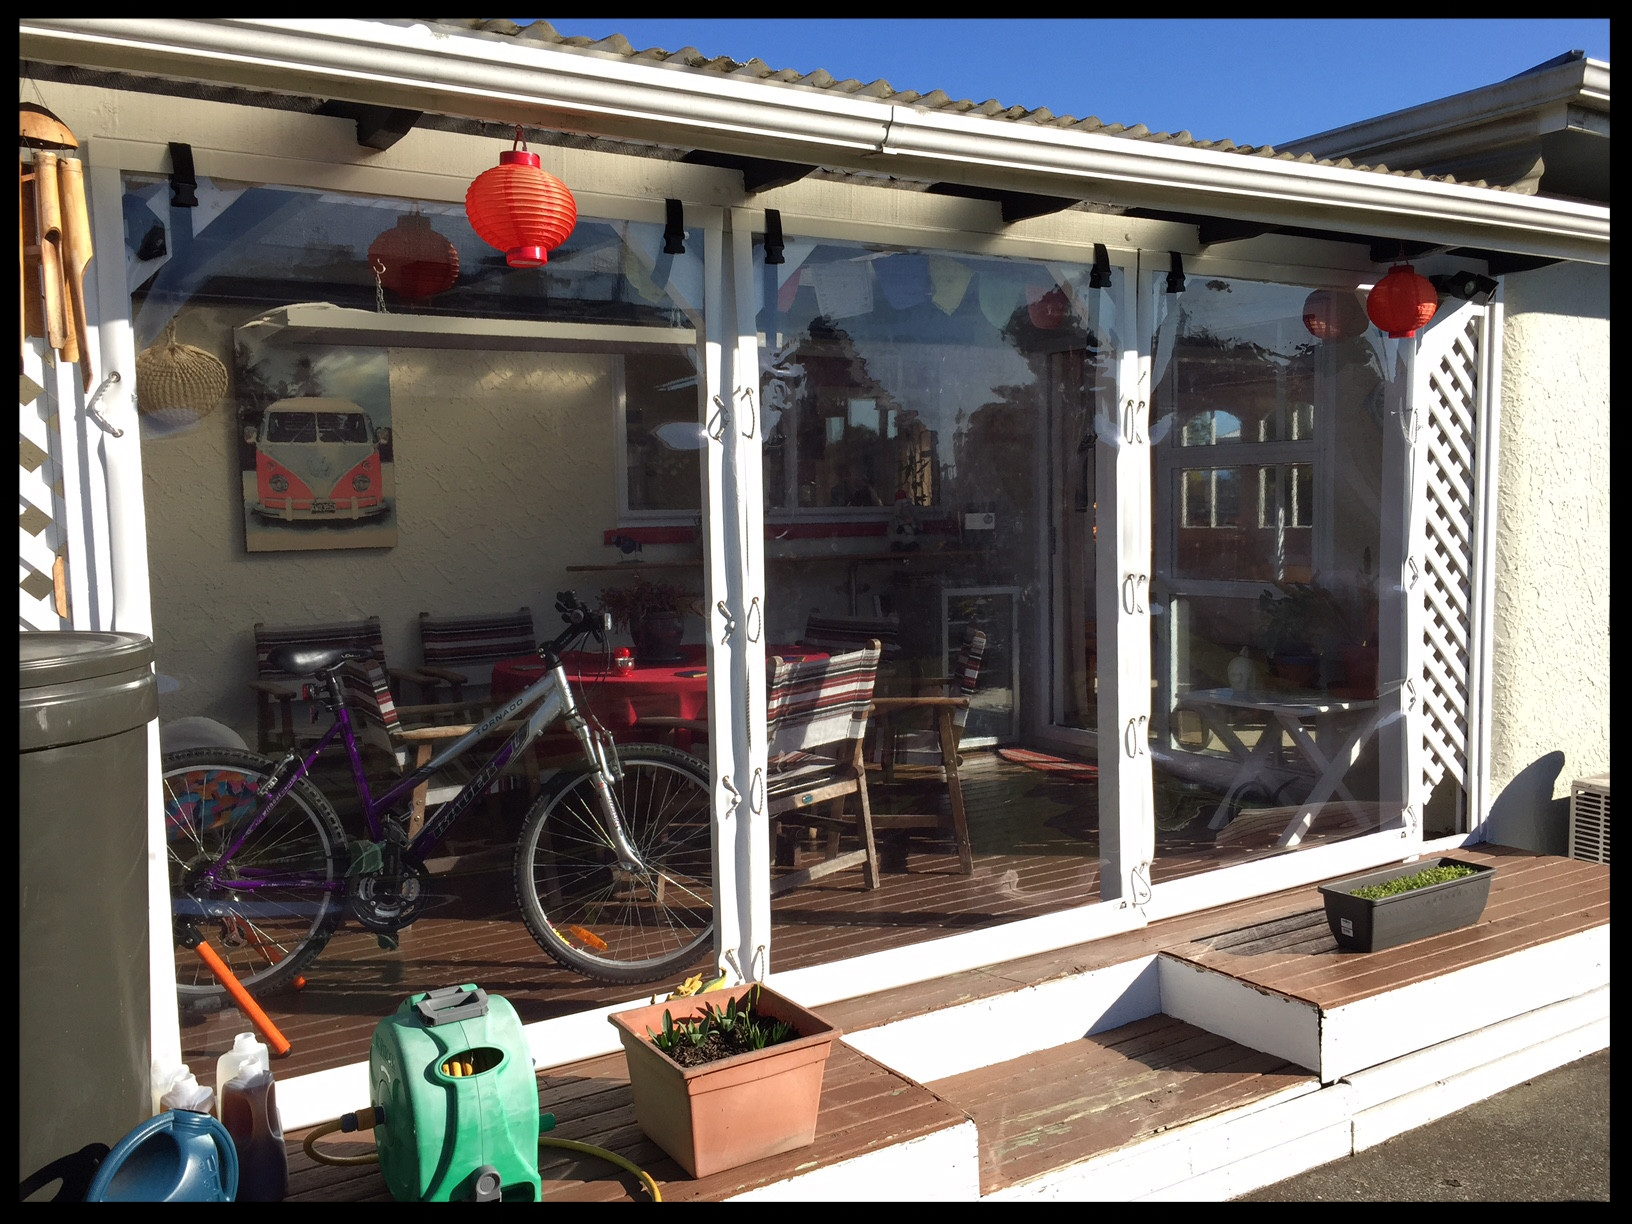 Clear Patio Blinds, Stoke, Nelson, New Zealand